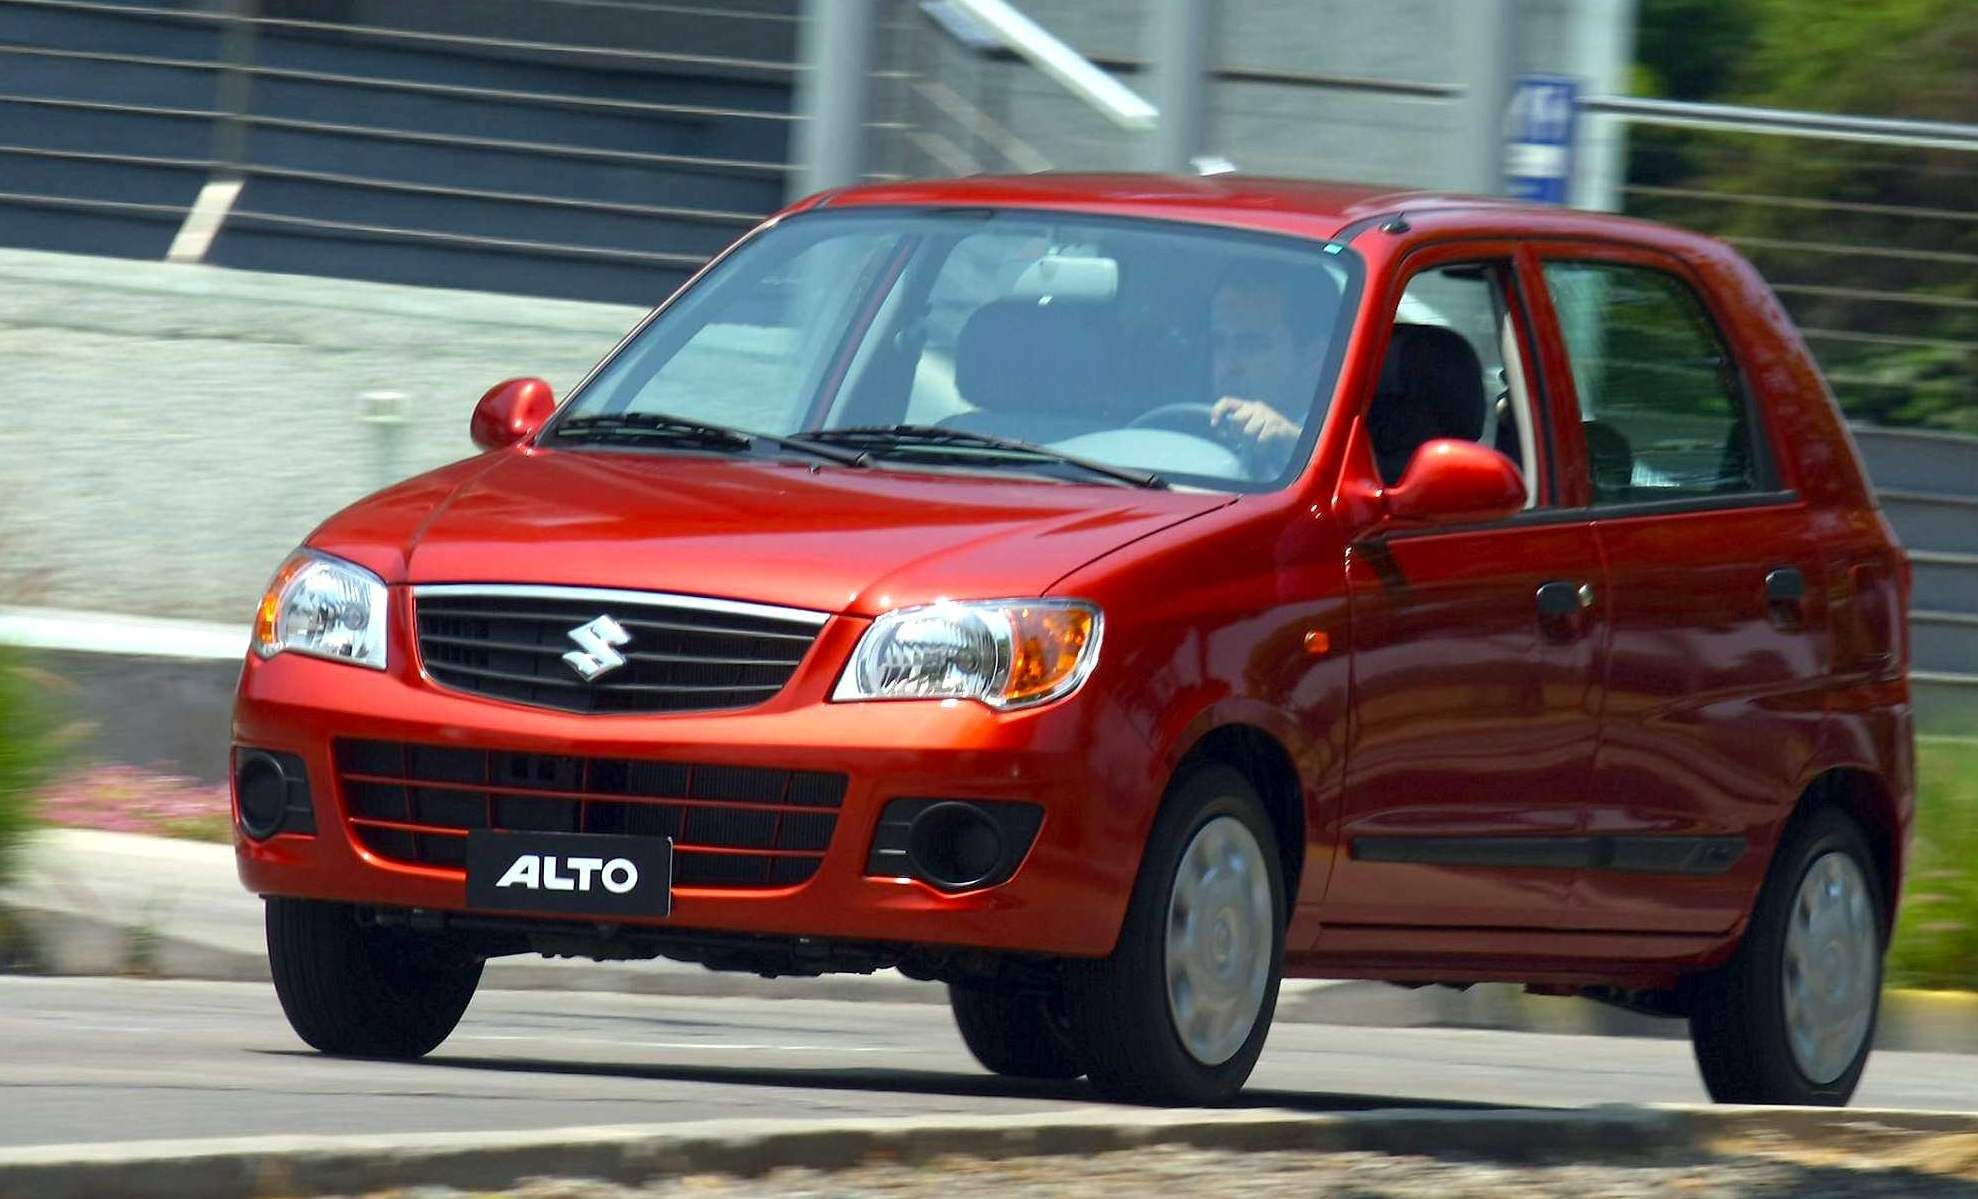 Maruti Suzuki Reported Sales Of 30lakh Alto Cars In India Maruti